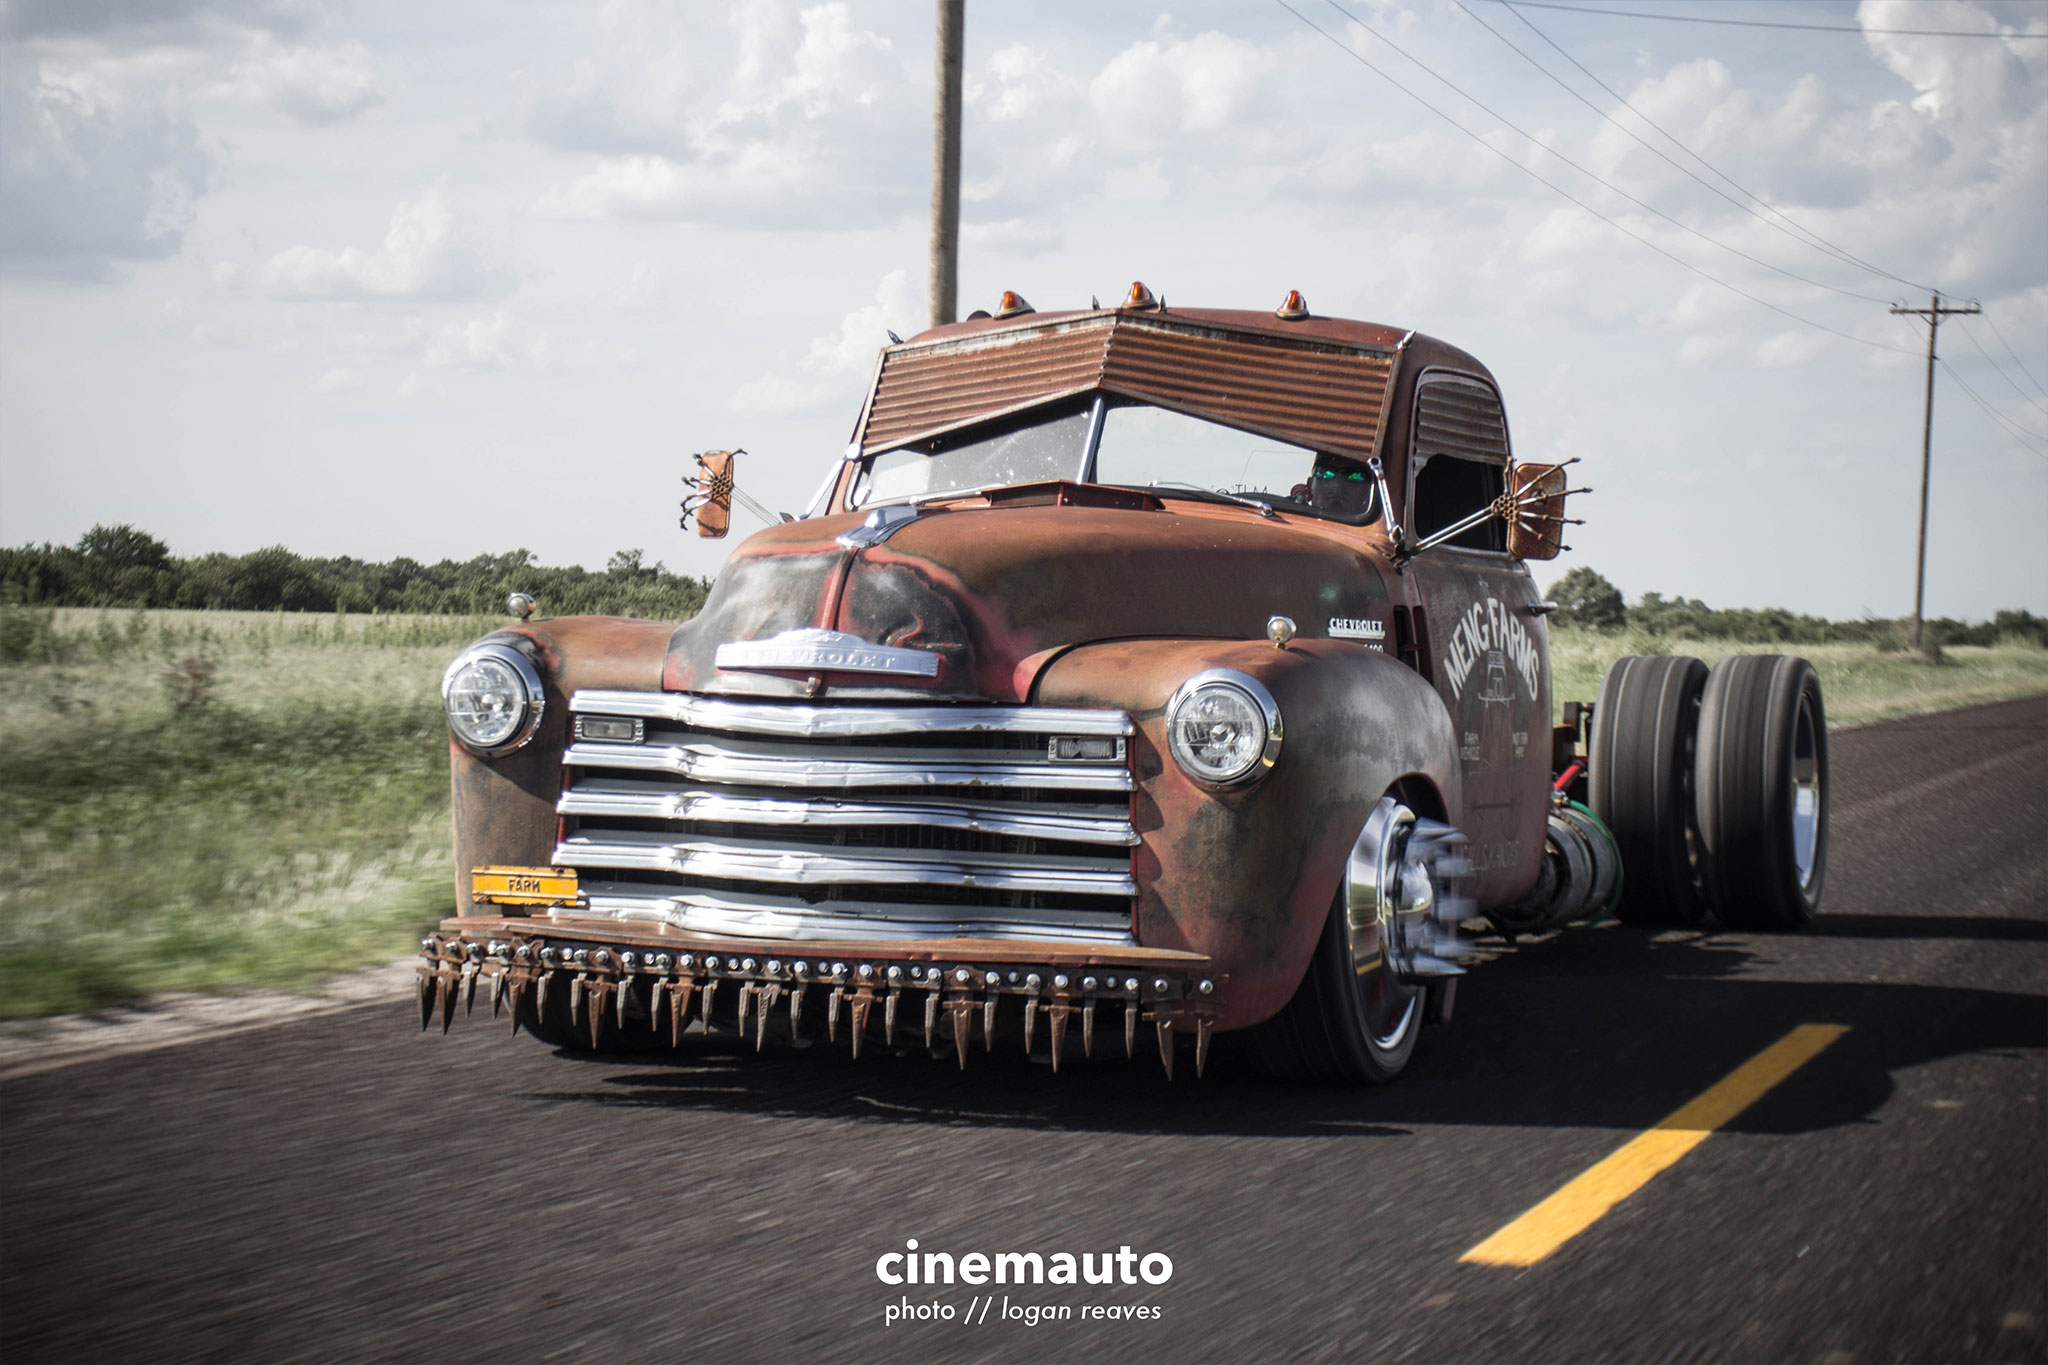 rattruck_cinemauto8.jpg